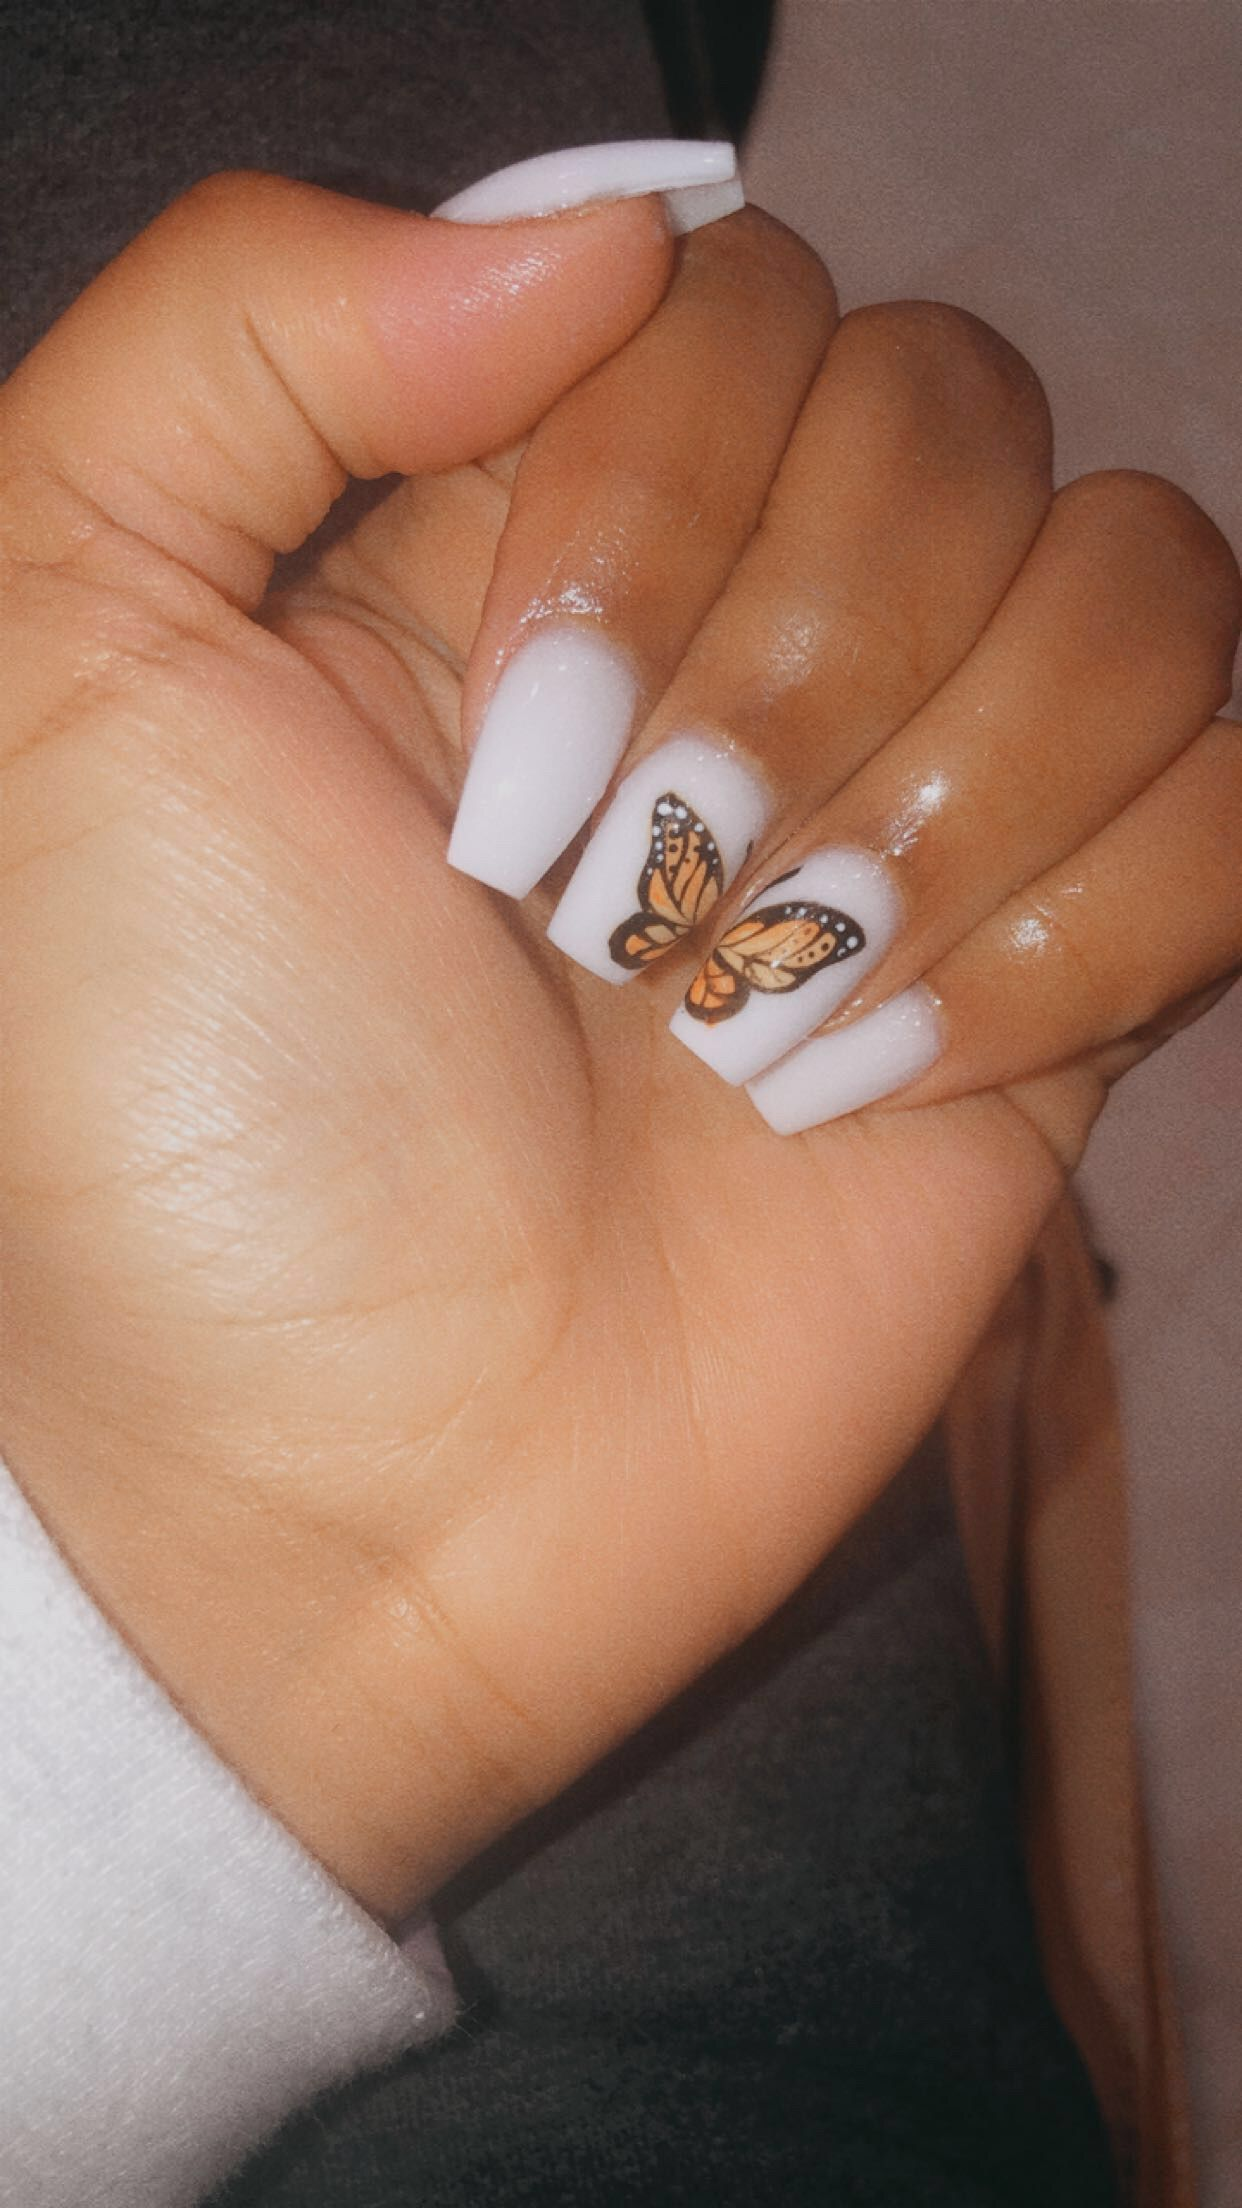 Butterfly White Short Coffin Nails Nails Acrylic Cute Nails Simple Nails Do N In 2020 Short Acrylic Nails Designs Acrylic Nails Coffin Short Square Acrylic Nails